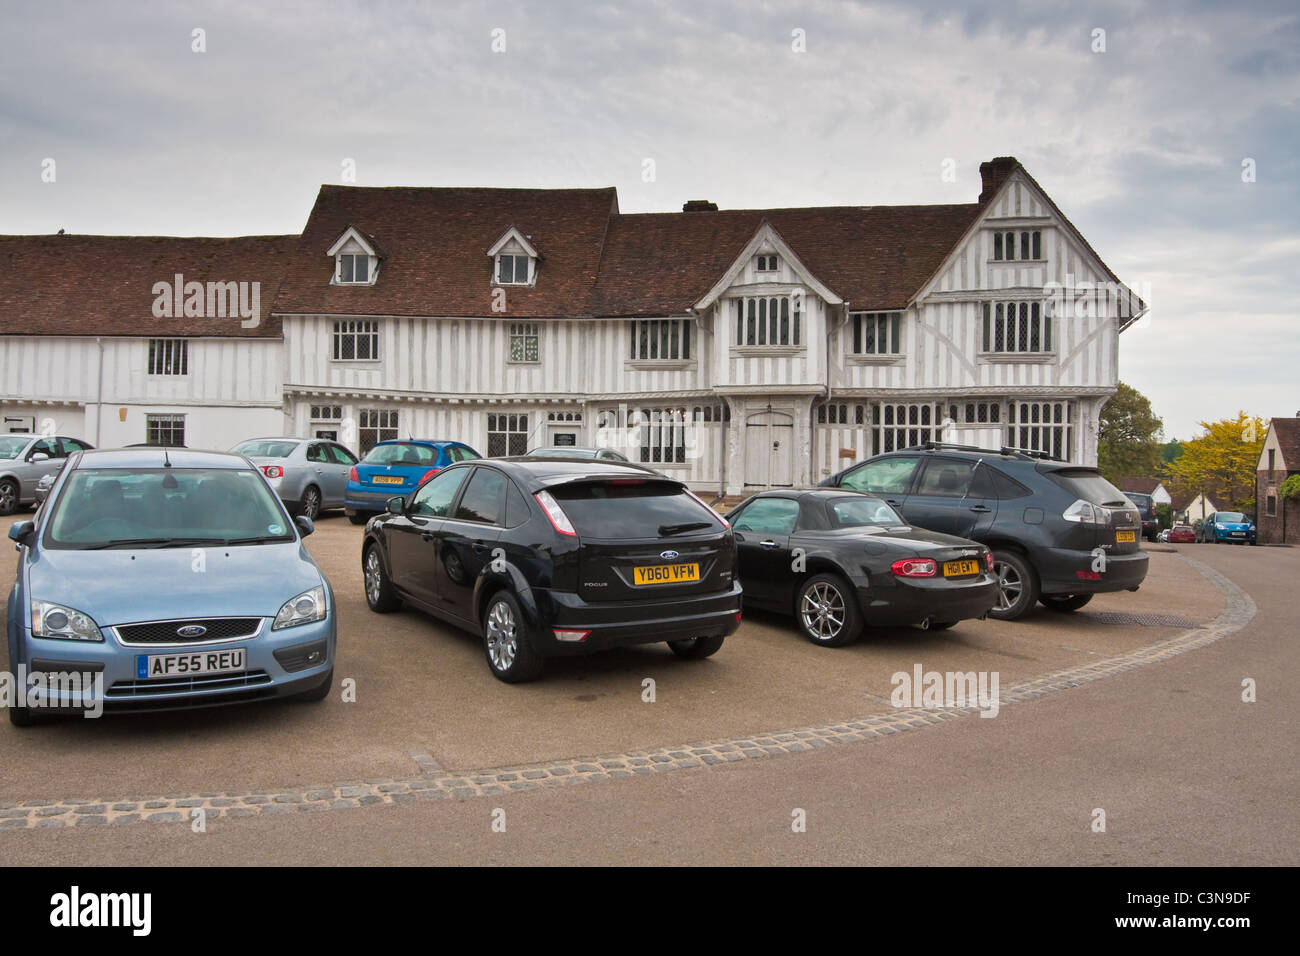 Modern cars parked in front of a medieval building in Lavenham, Suffolk - Stock Image